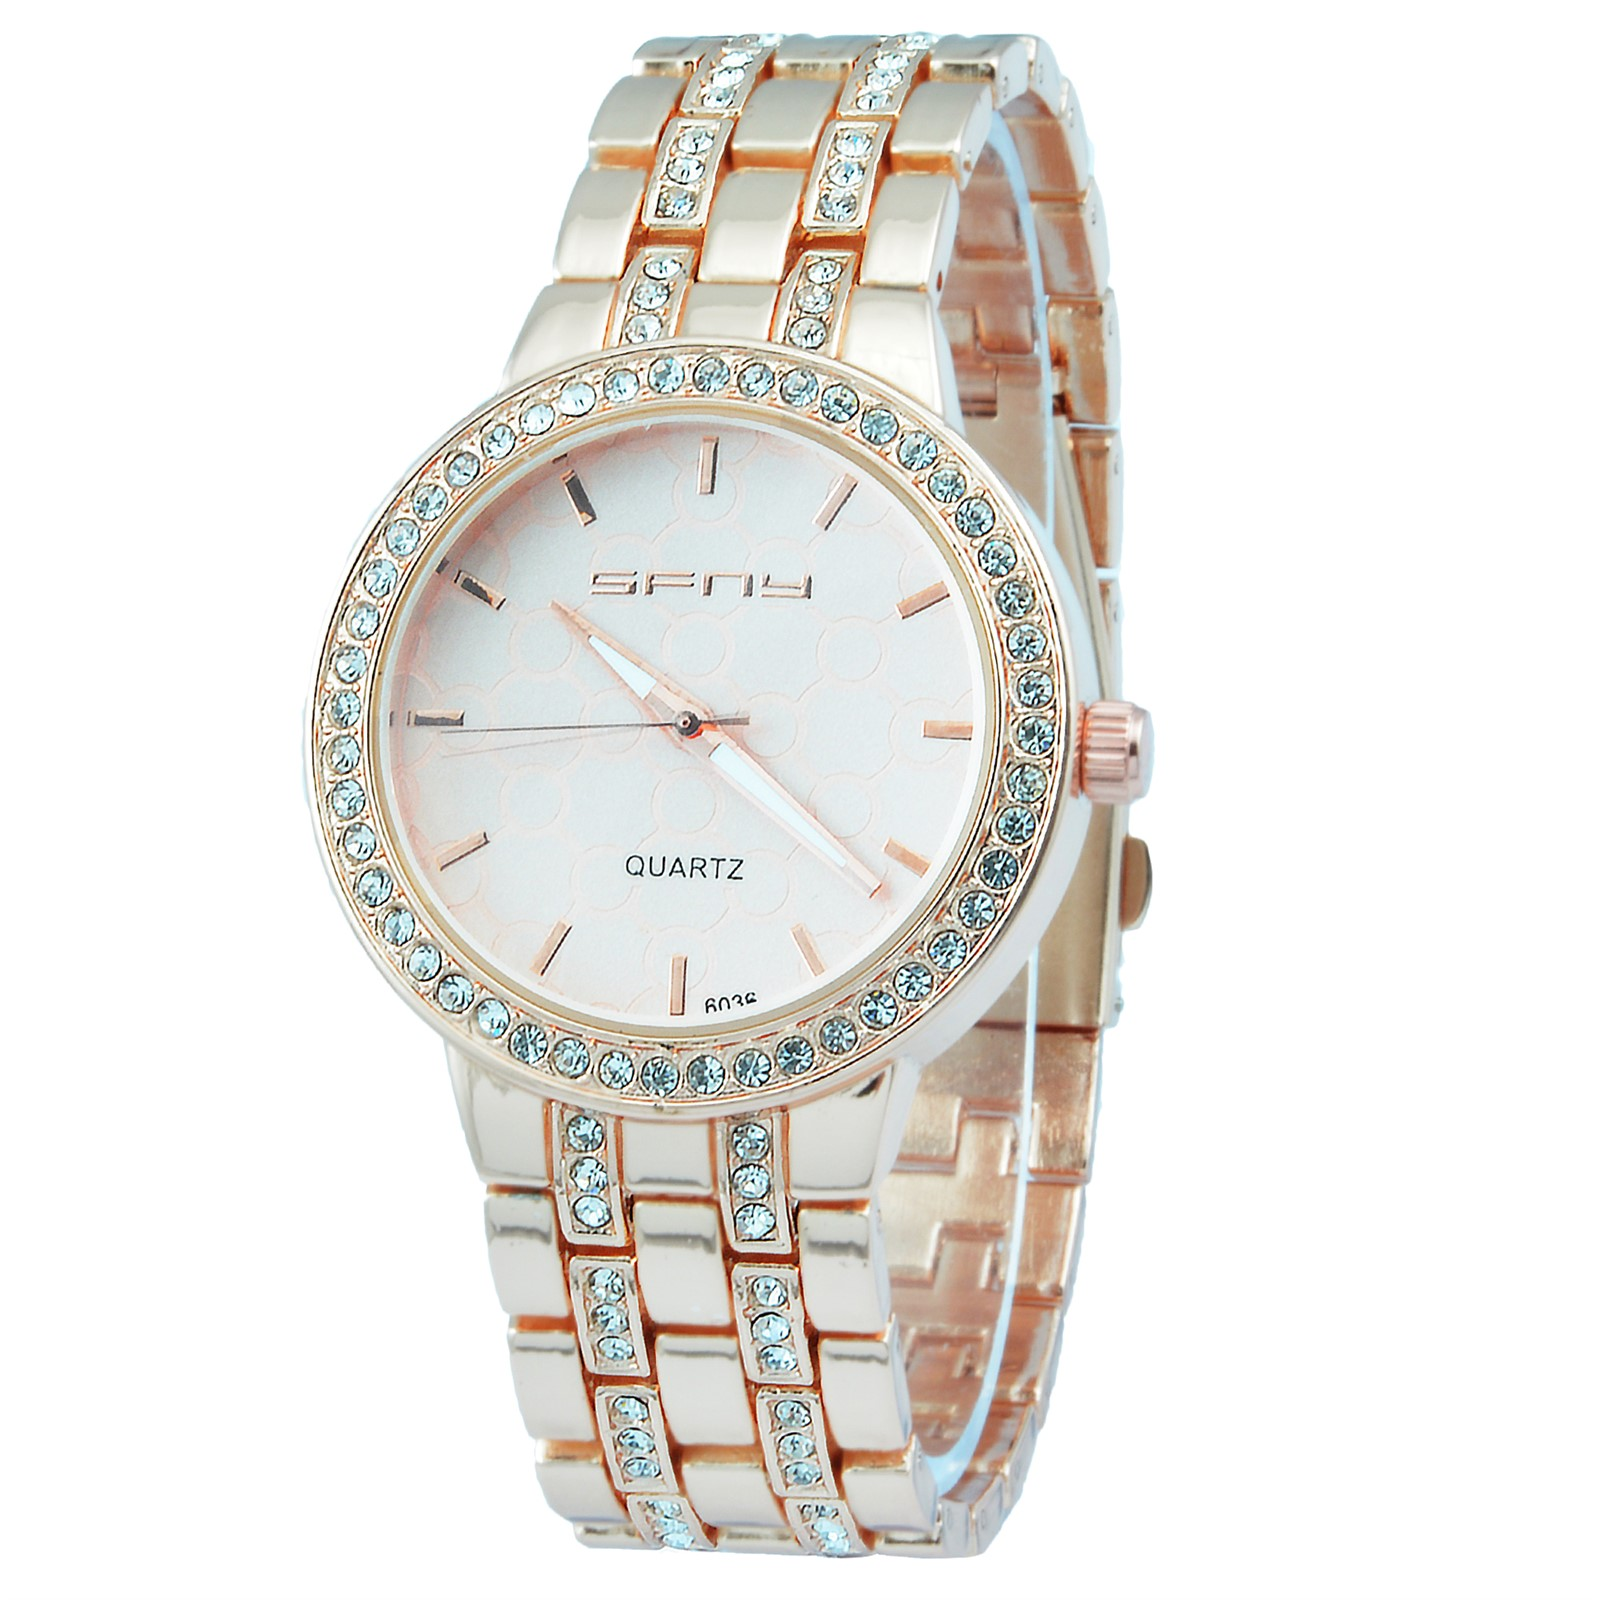 s watch in wristwatches quartz crystal watches new from vintage bracelet women lady luxury clock leather dress rhinestone item